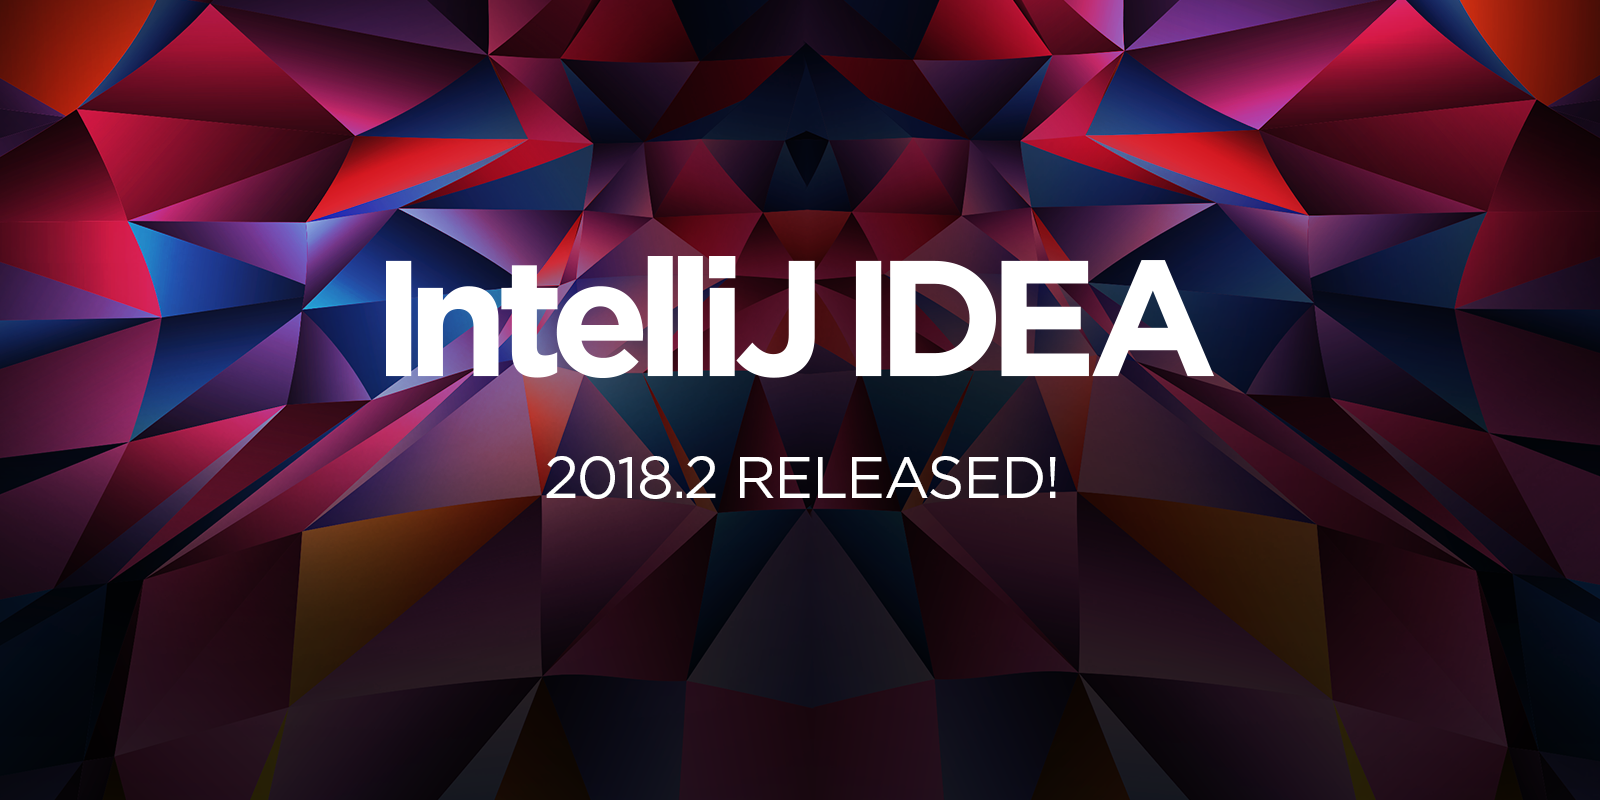 IntelliJ IDEA 2018.2 released with Java 11 support and Spring Boot improvements